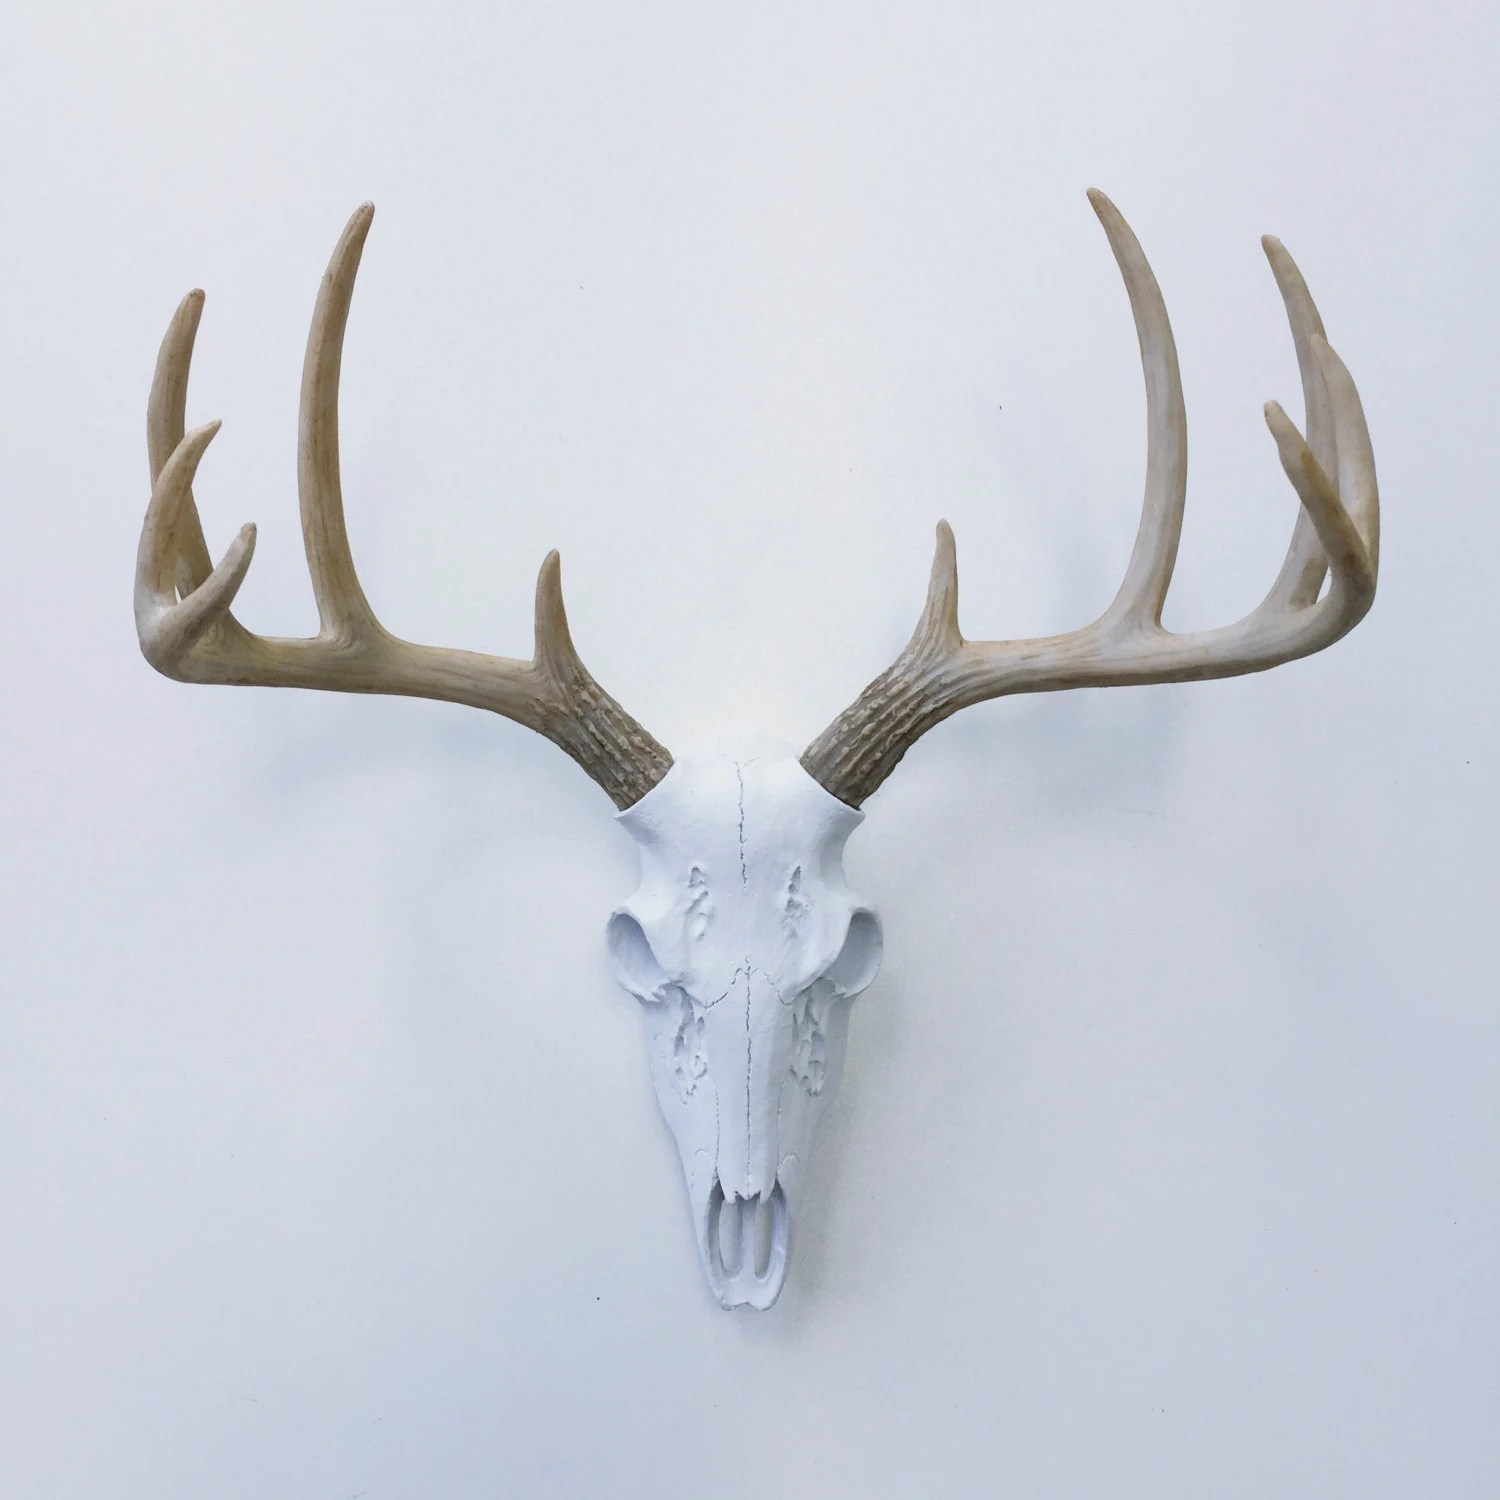 Fake Deer Skull And Antlers Any Color Realistic Deer Skull Wall Mount Fake Deer Antlers